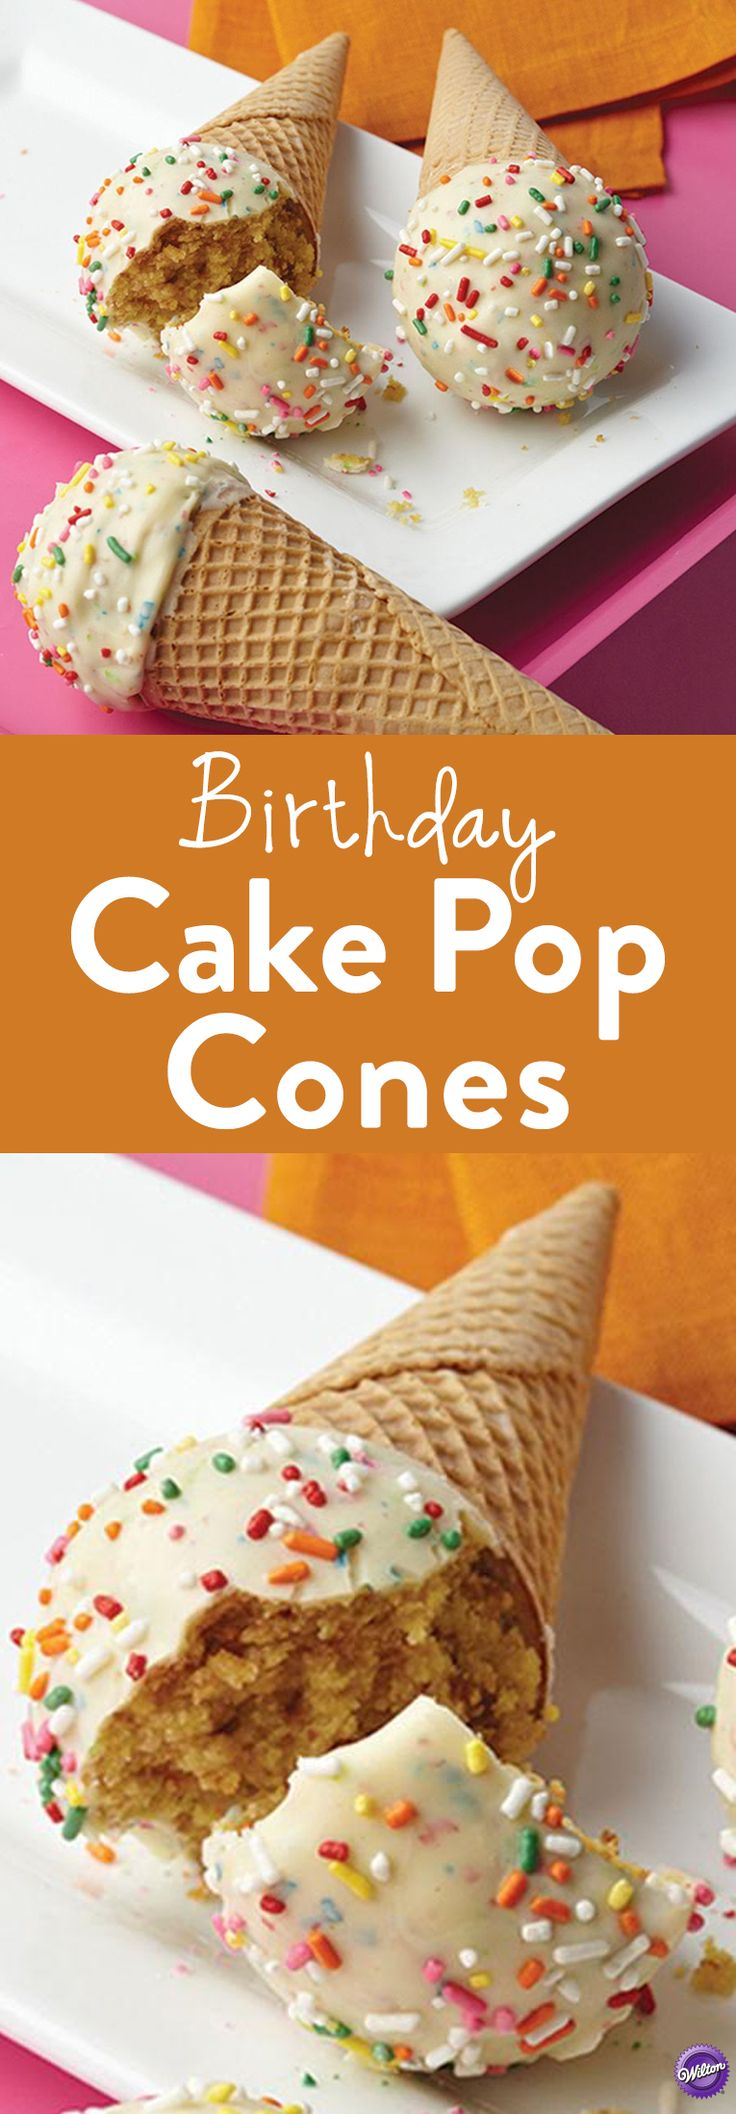 How to Make Cake Pop Cones - Roll cake mixture into a ball and insert inside the sugar cone coated with Candy Melts candy. Add sprinkles. Your guests will love the sweet surprise inside this birthday cake pop cone.